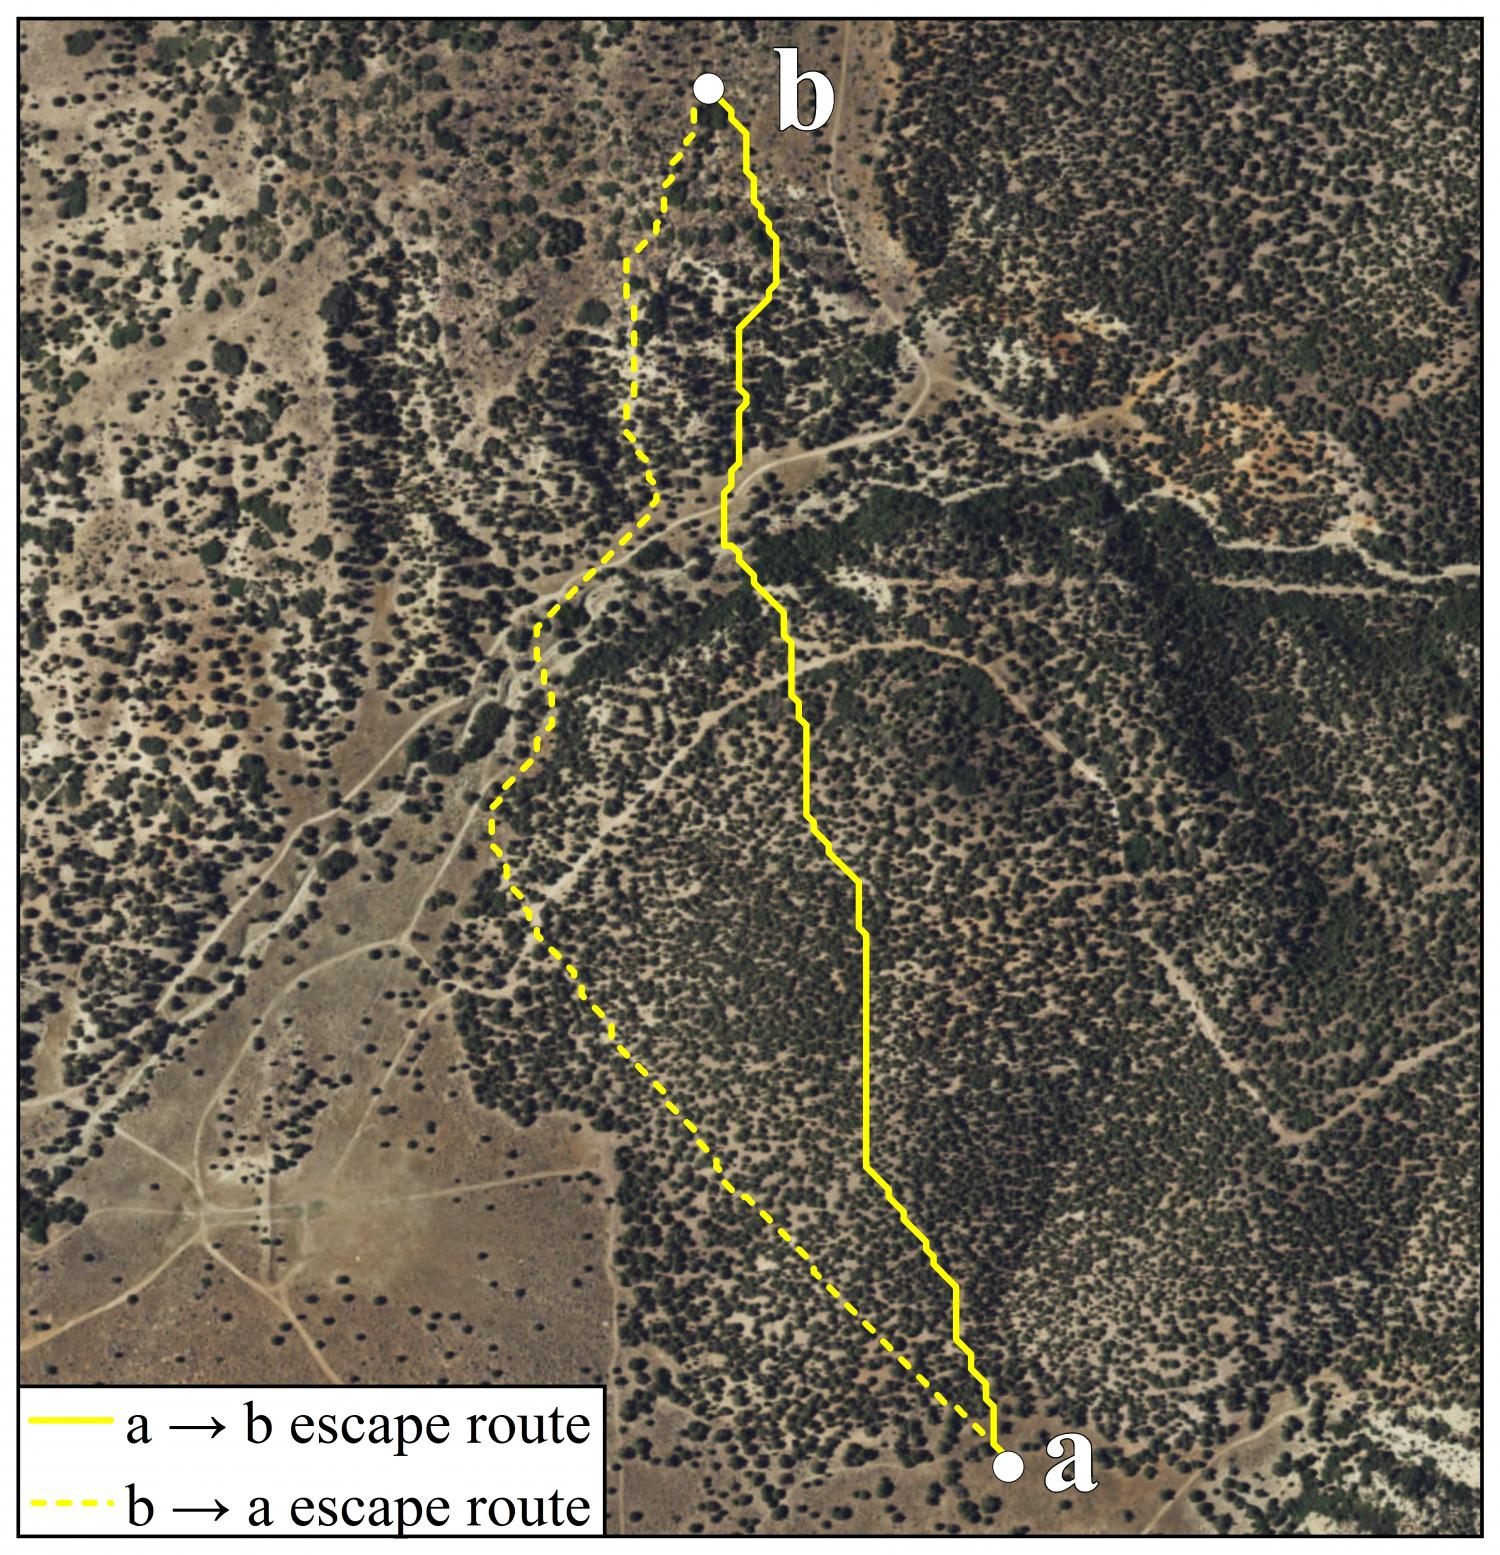 New Study The First To Map Escape Routes For Wildland Firefighters From